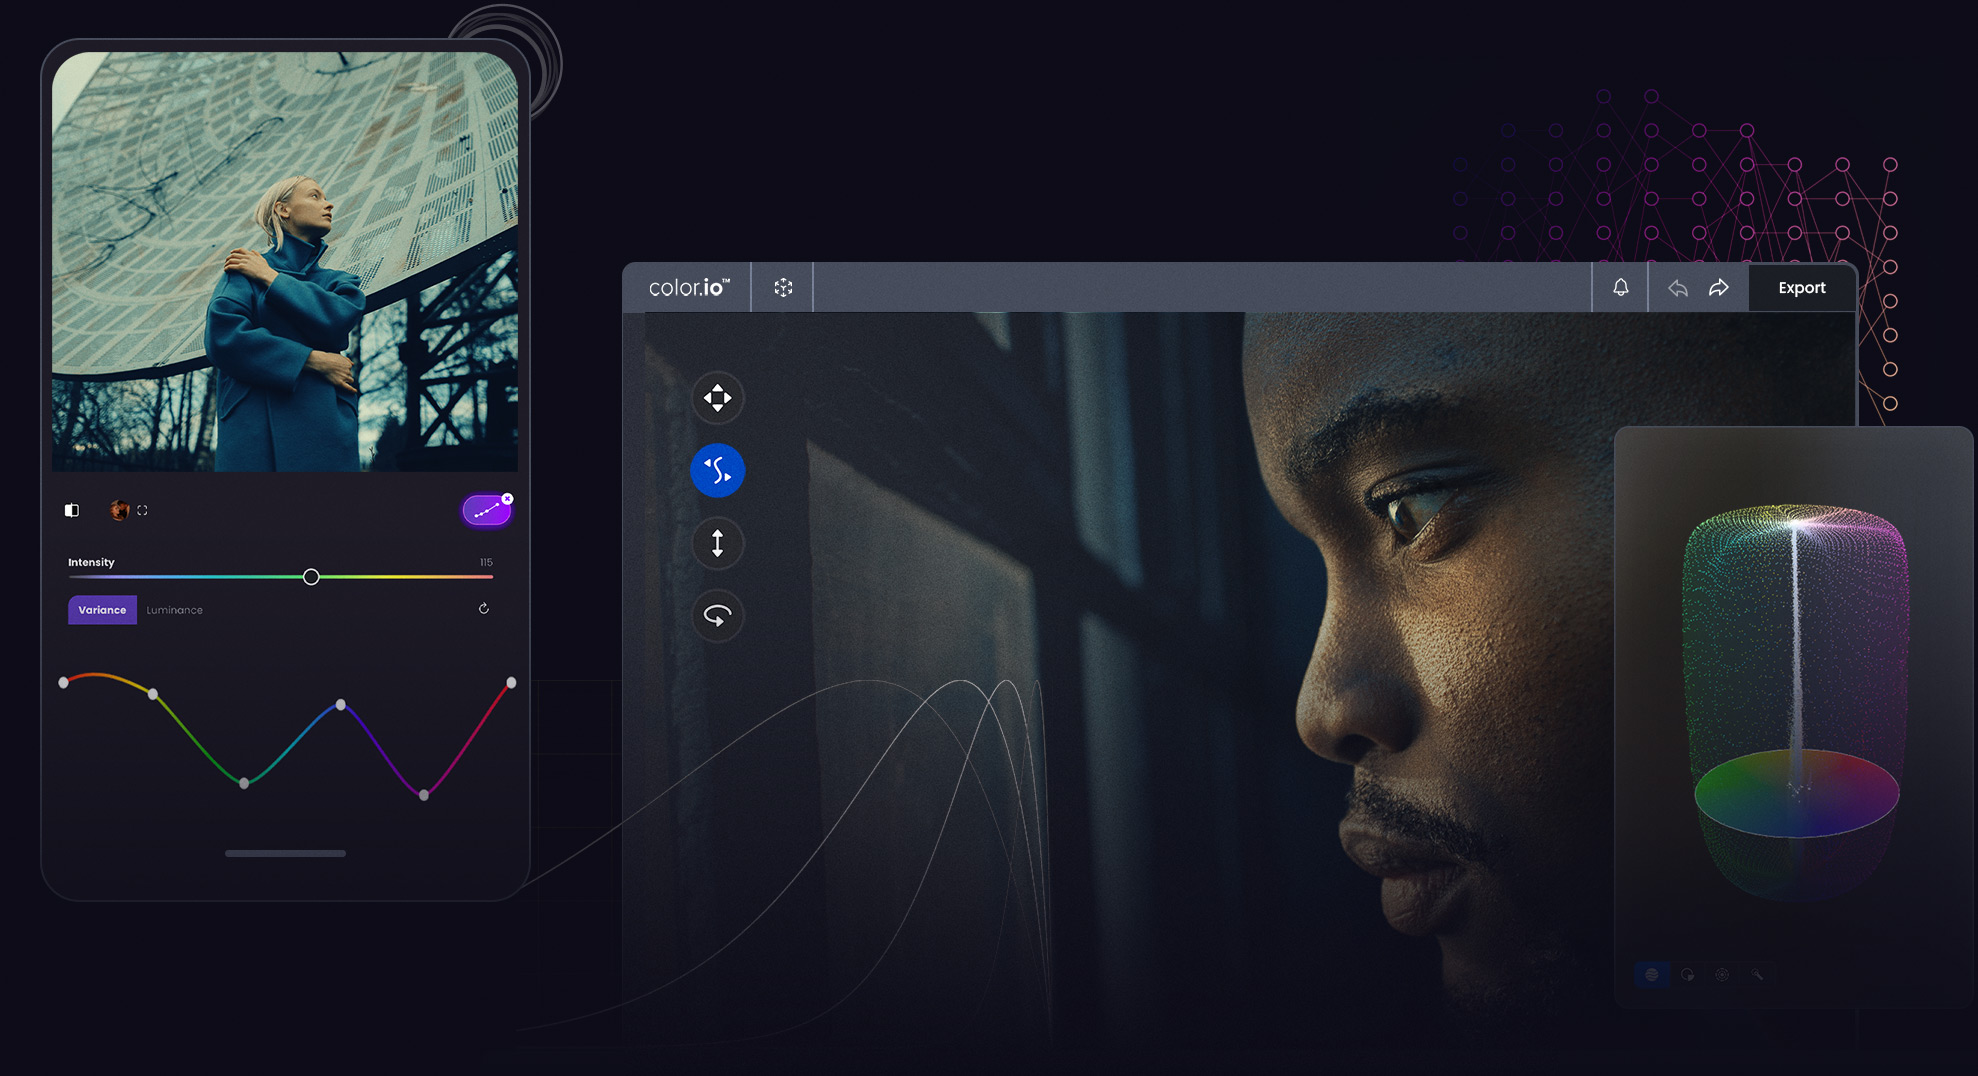 Color.io - Innovative Color Grading Software powered by Artificial Intelligence